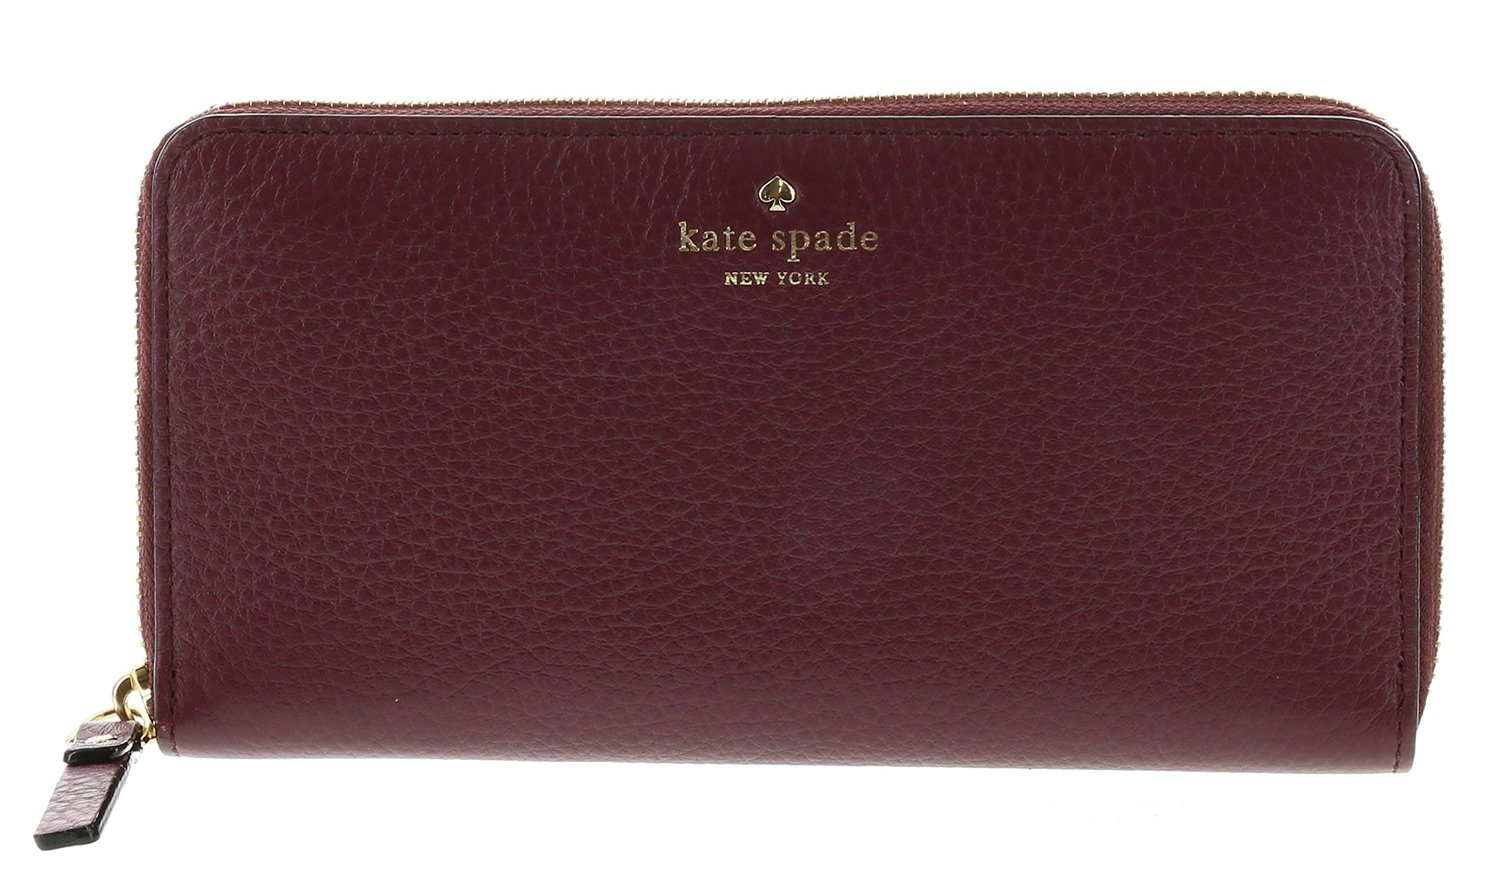 94e4f7ae8198 kate spade new york Bags  Buy Online from Fishpond.co.nz